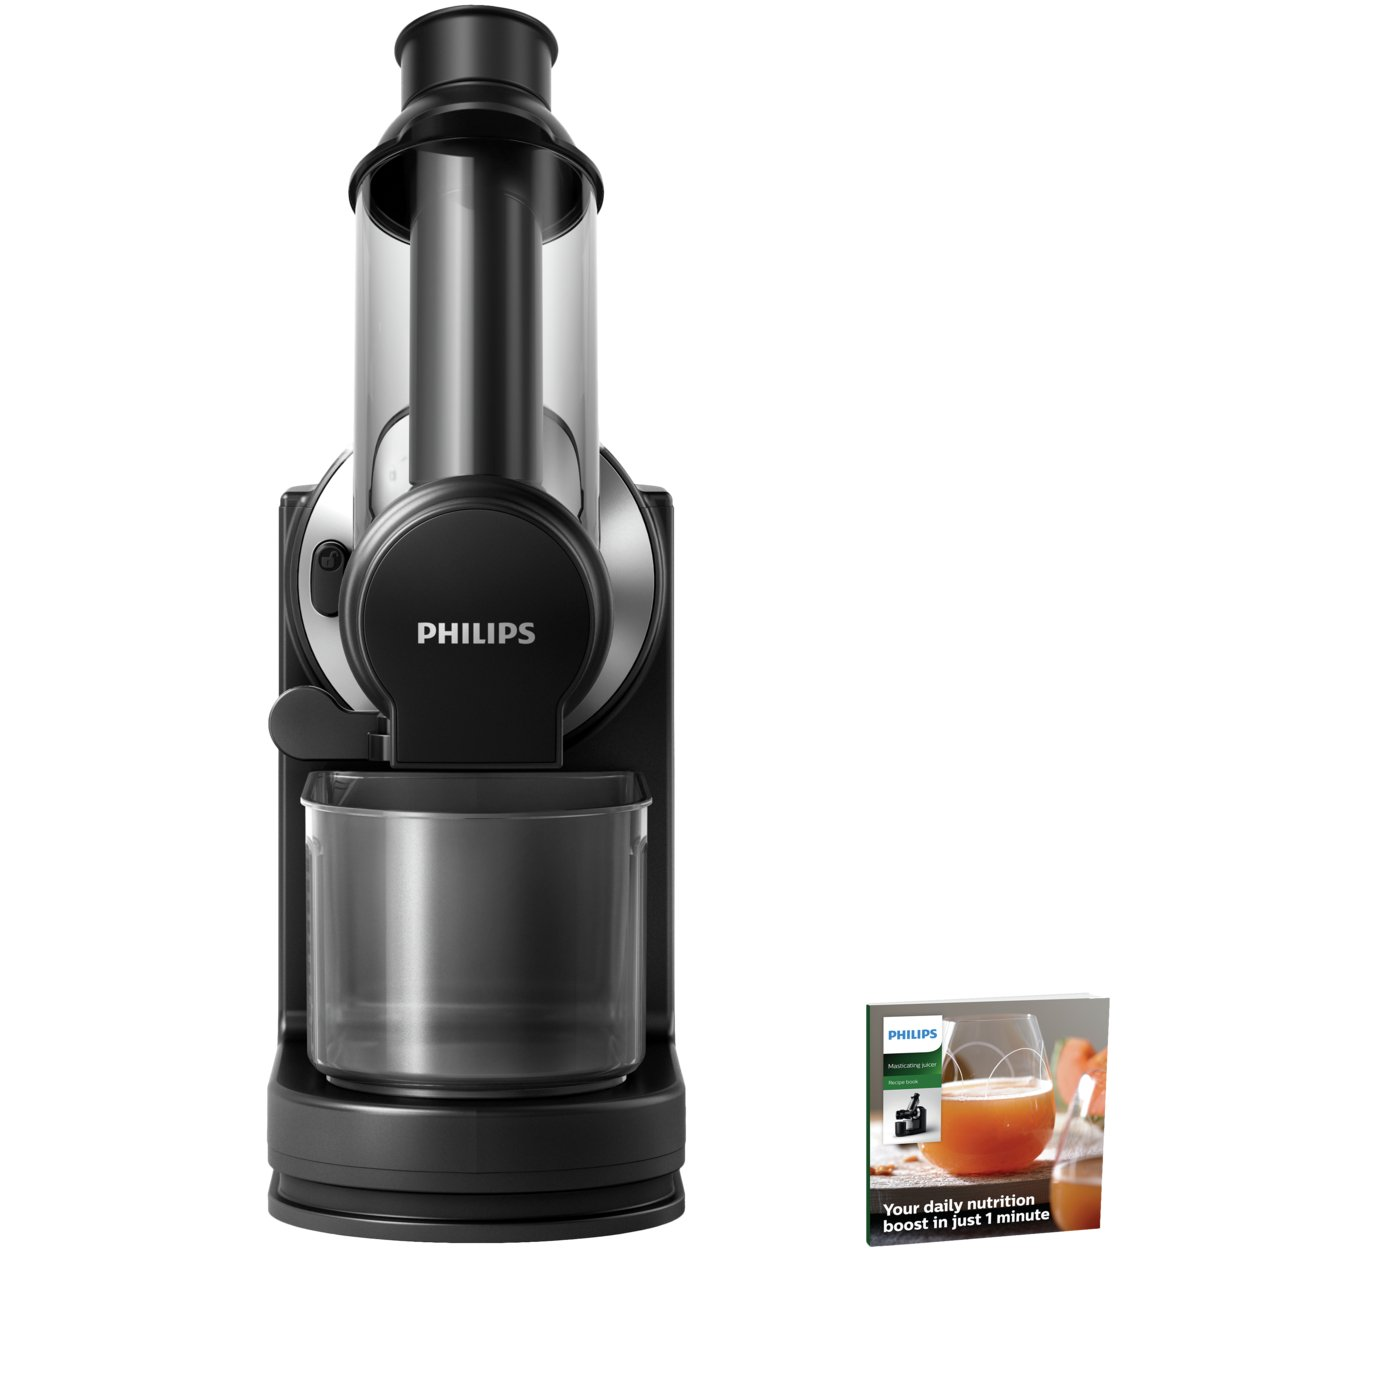 Philips Slow Juicer Pret : Philips viva HR1889/71 Slow Juicer ?239.99 Gay Times